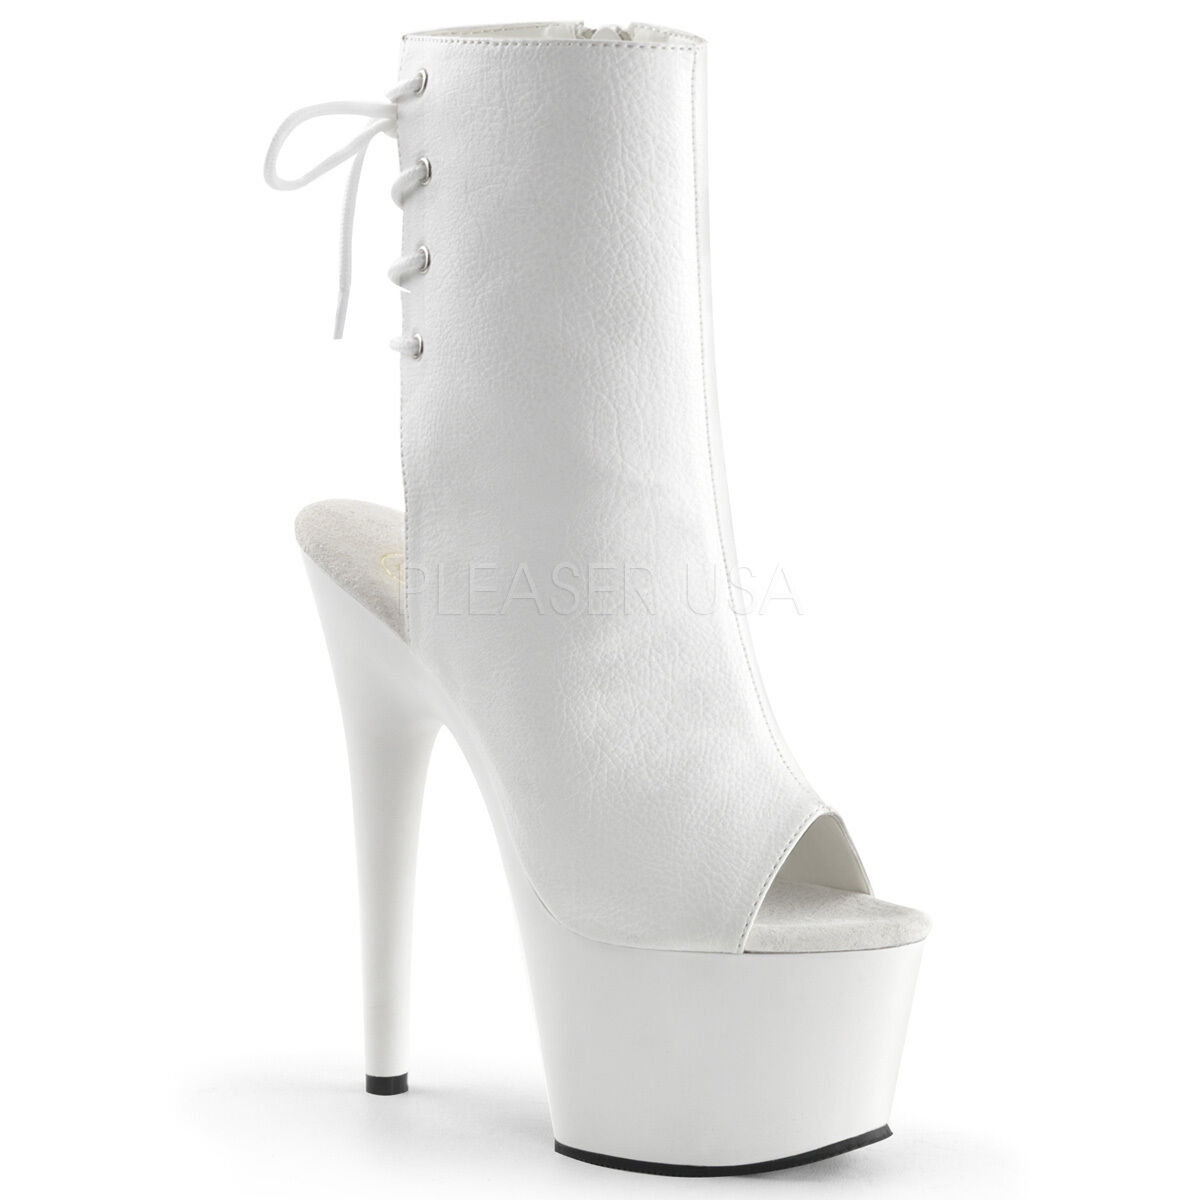 PLEASER Sexy Stripper Dancer White Platform 7  High Heel Ankle Boots ADO1018 WPU